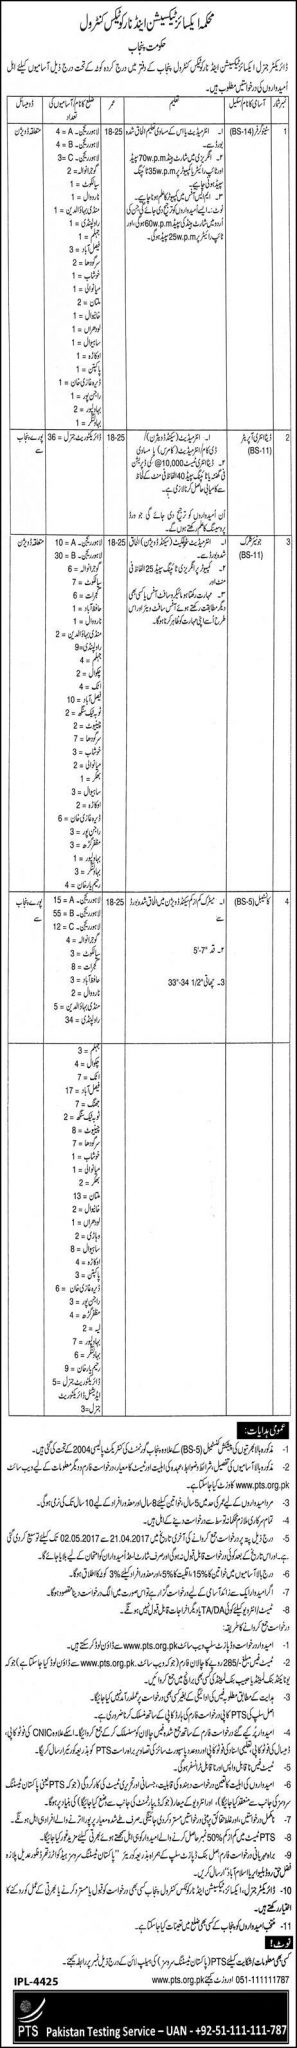 Excise and Taxation Narcotics Department Punjab Govt Jobs 2017 Application Form Submission Last Date PTS Test Schedule